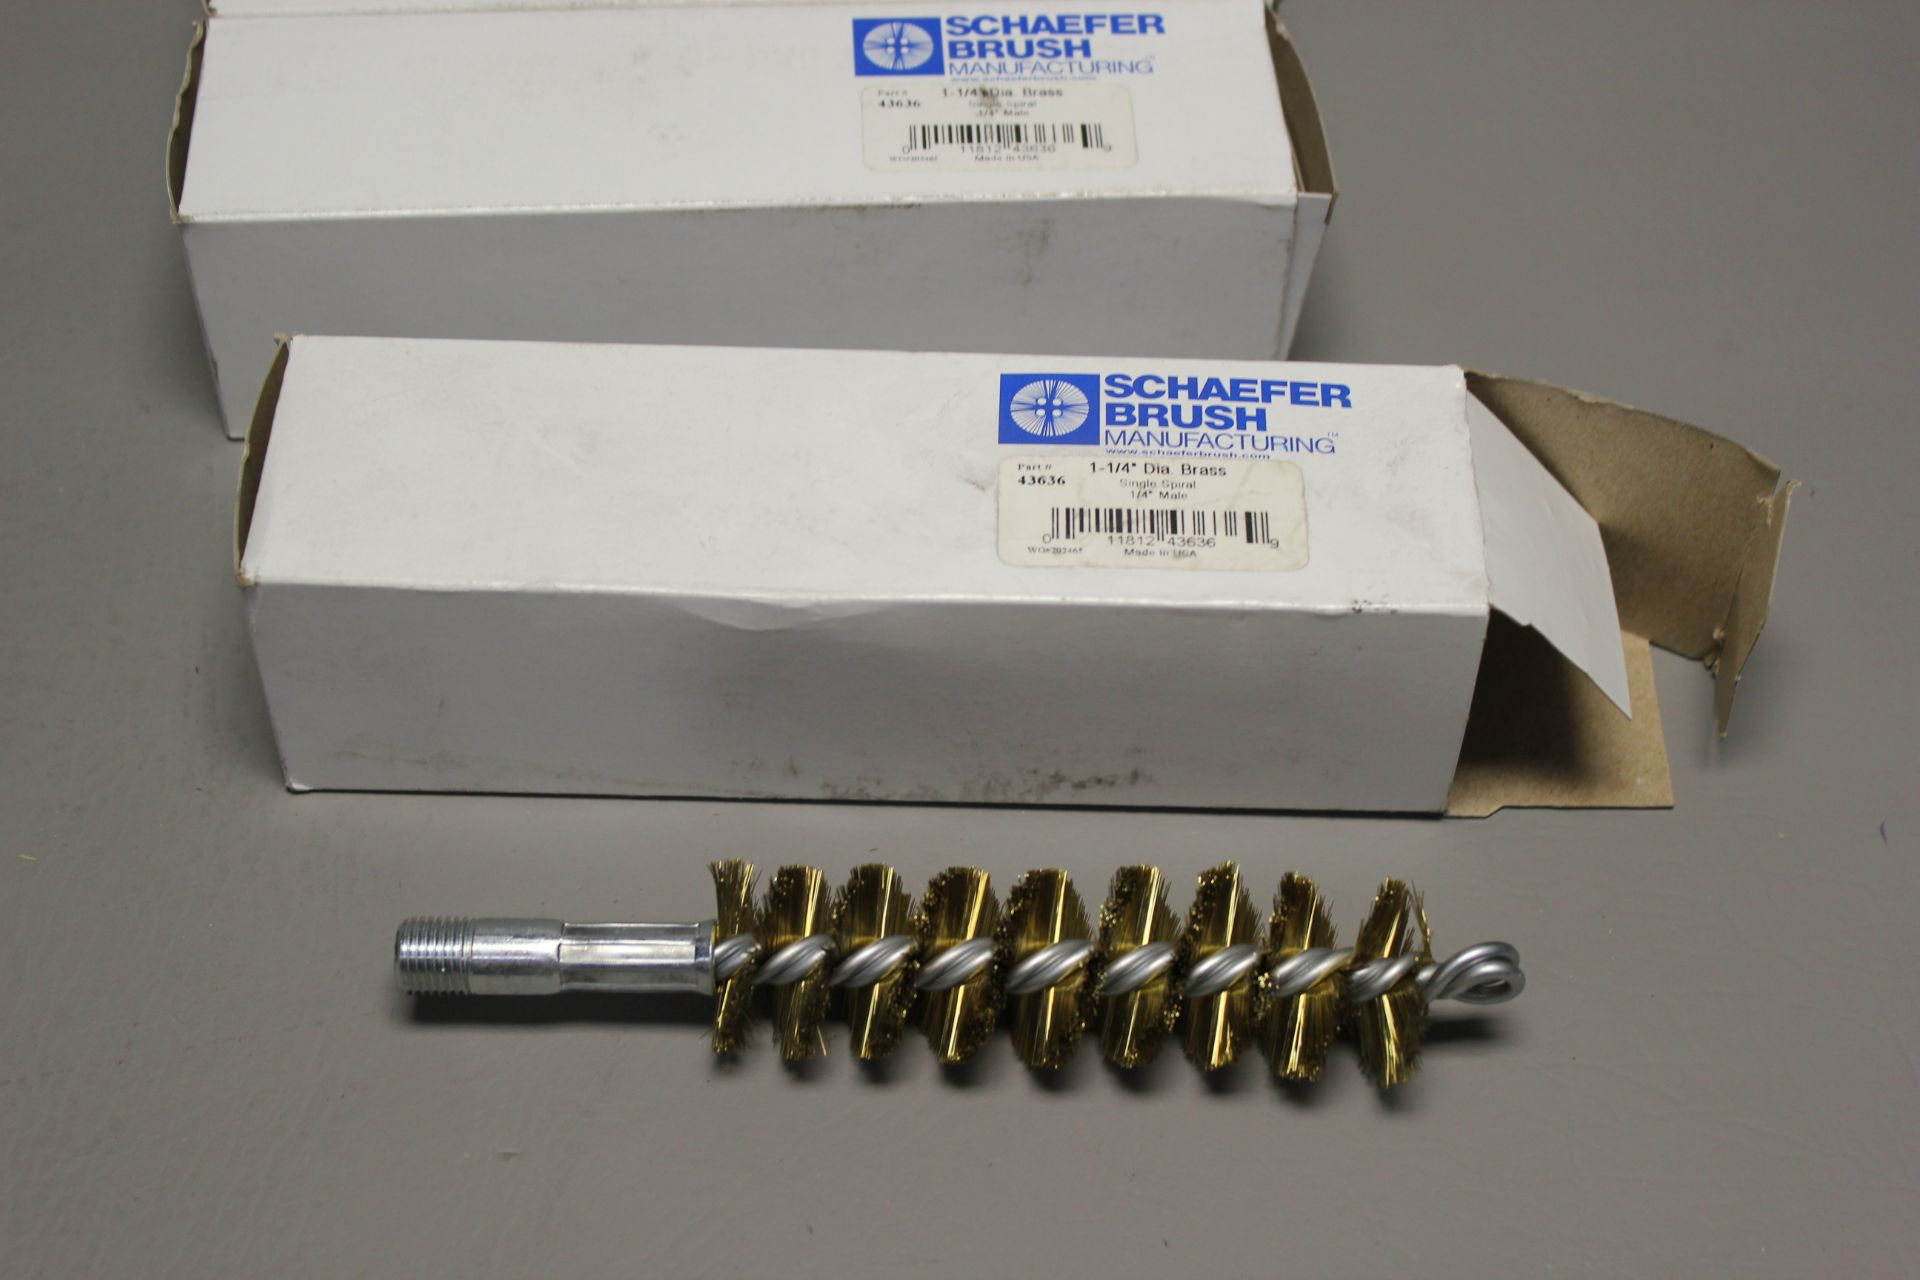 LOT OF NEW SCHAEFER BRASS INDUSTRIAL BRUSHES - Image 2 of 2